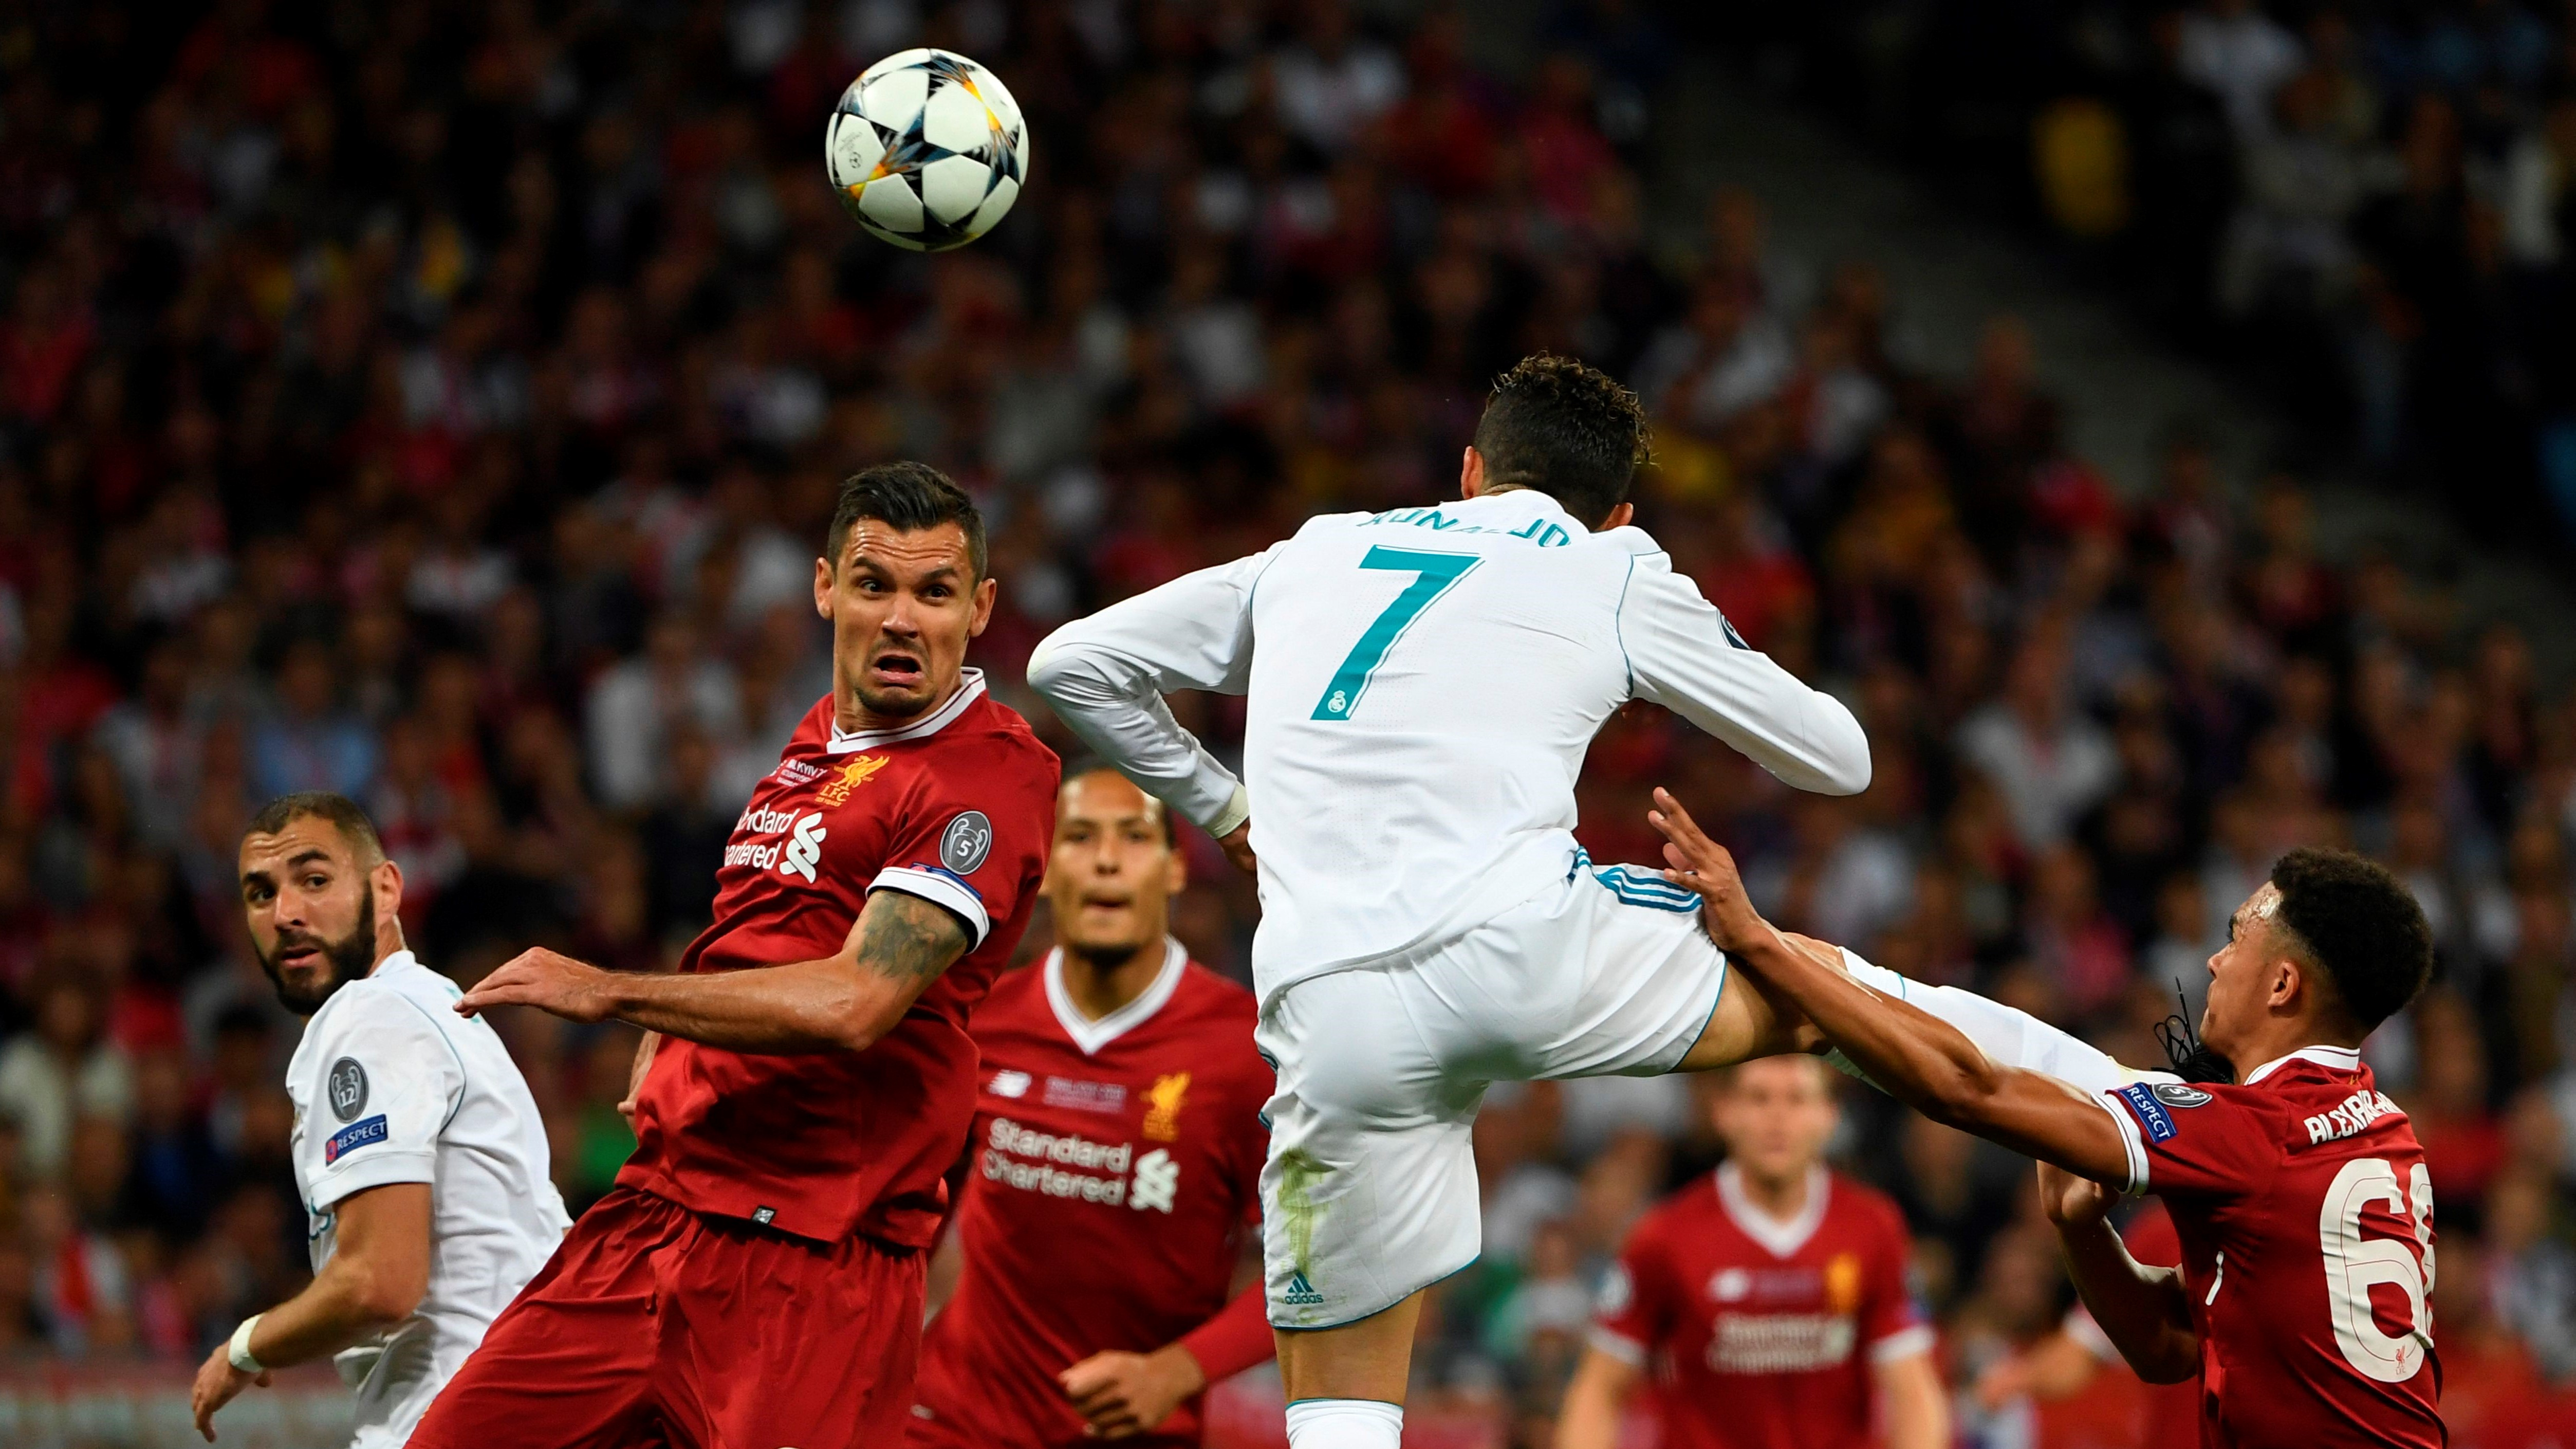 Cristiano Ronaldo Real Madrid Liverpool UCL